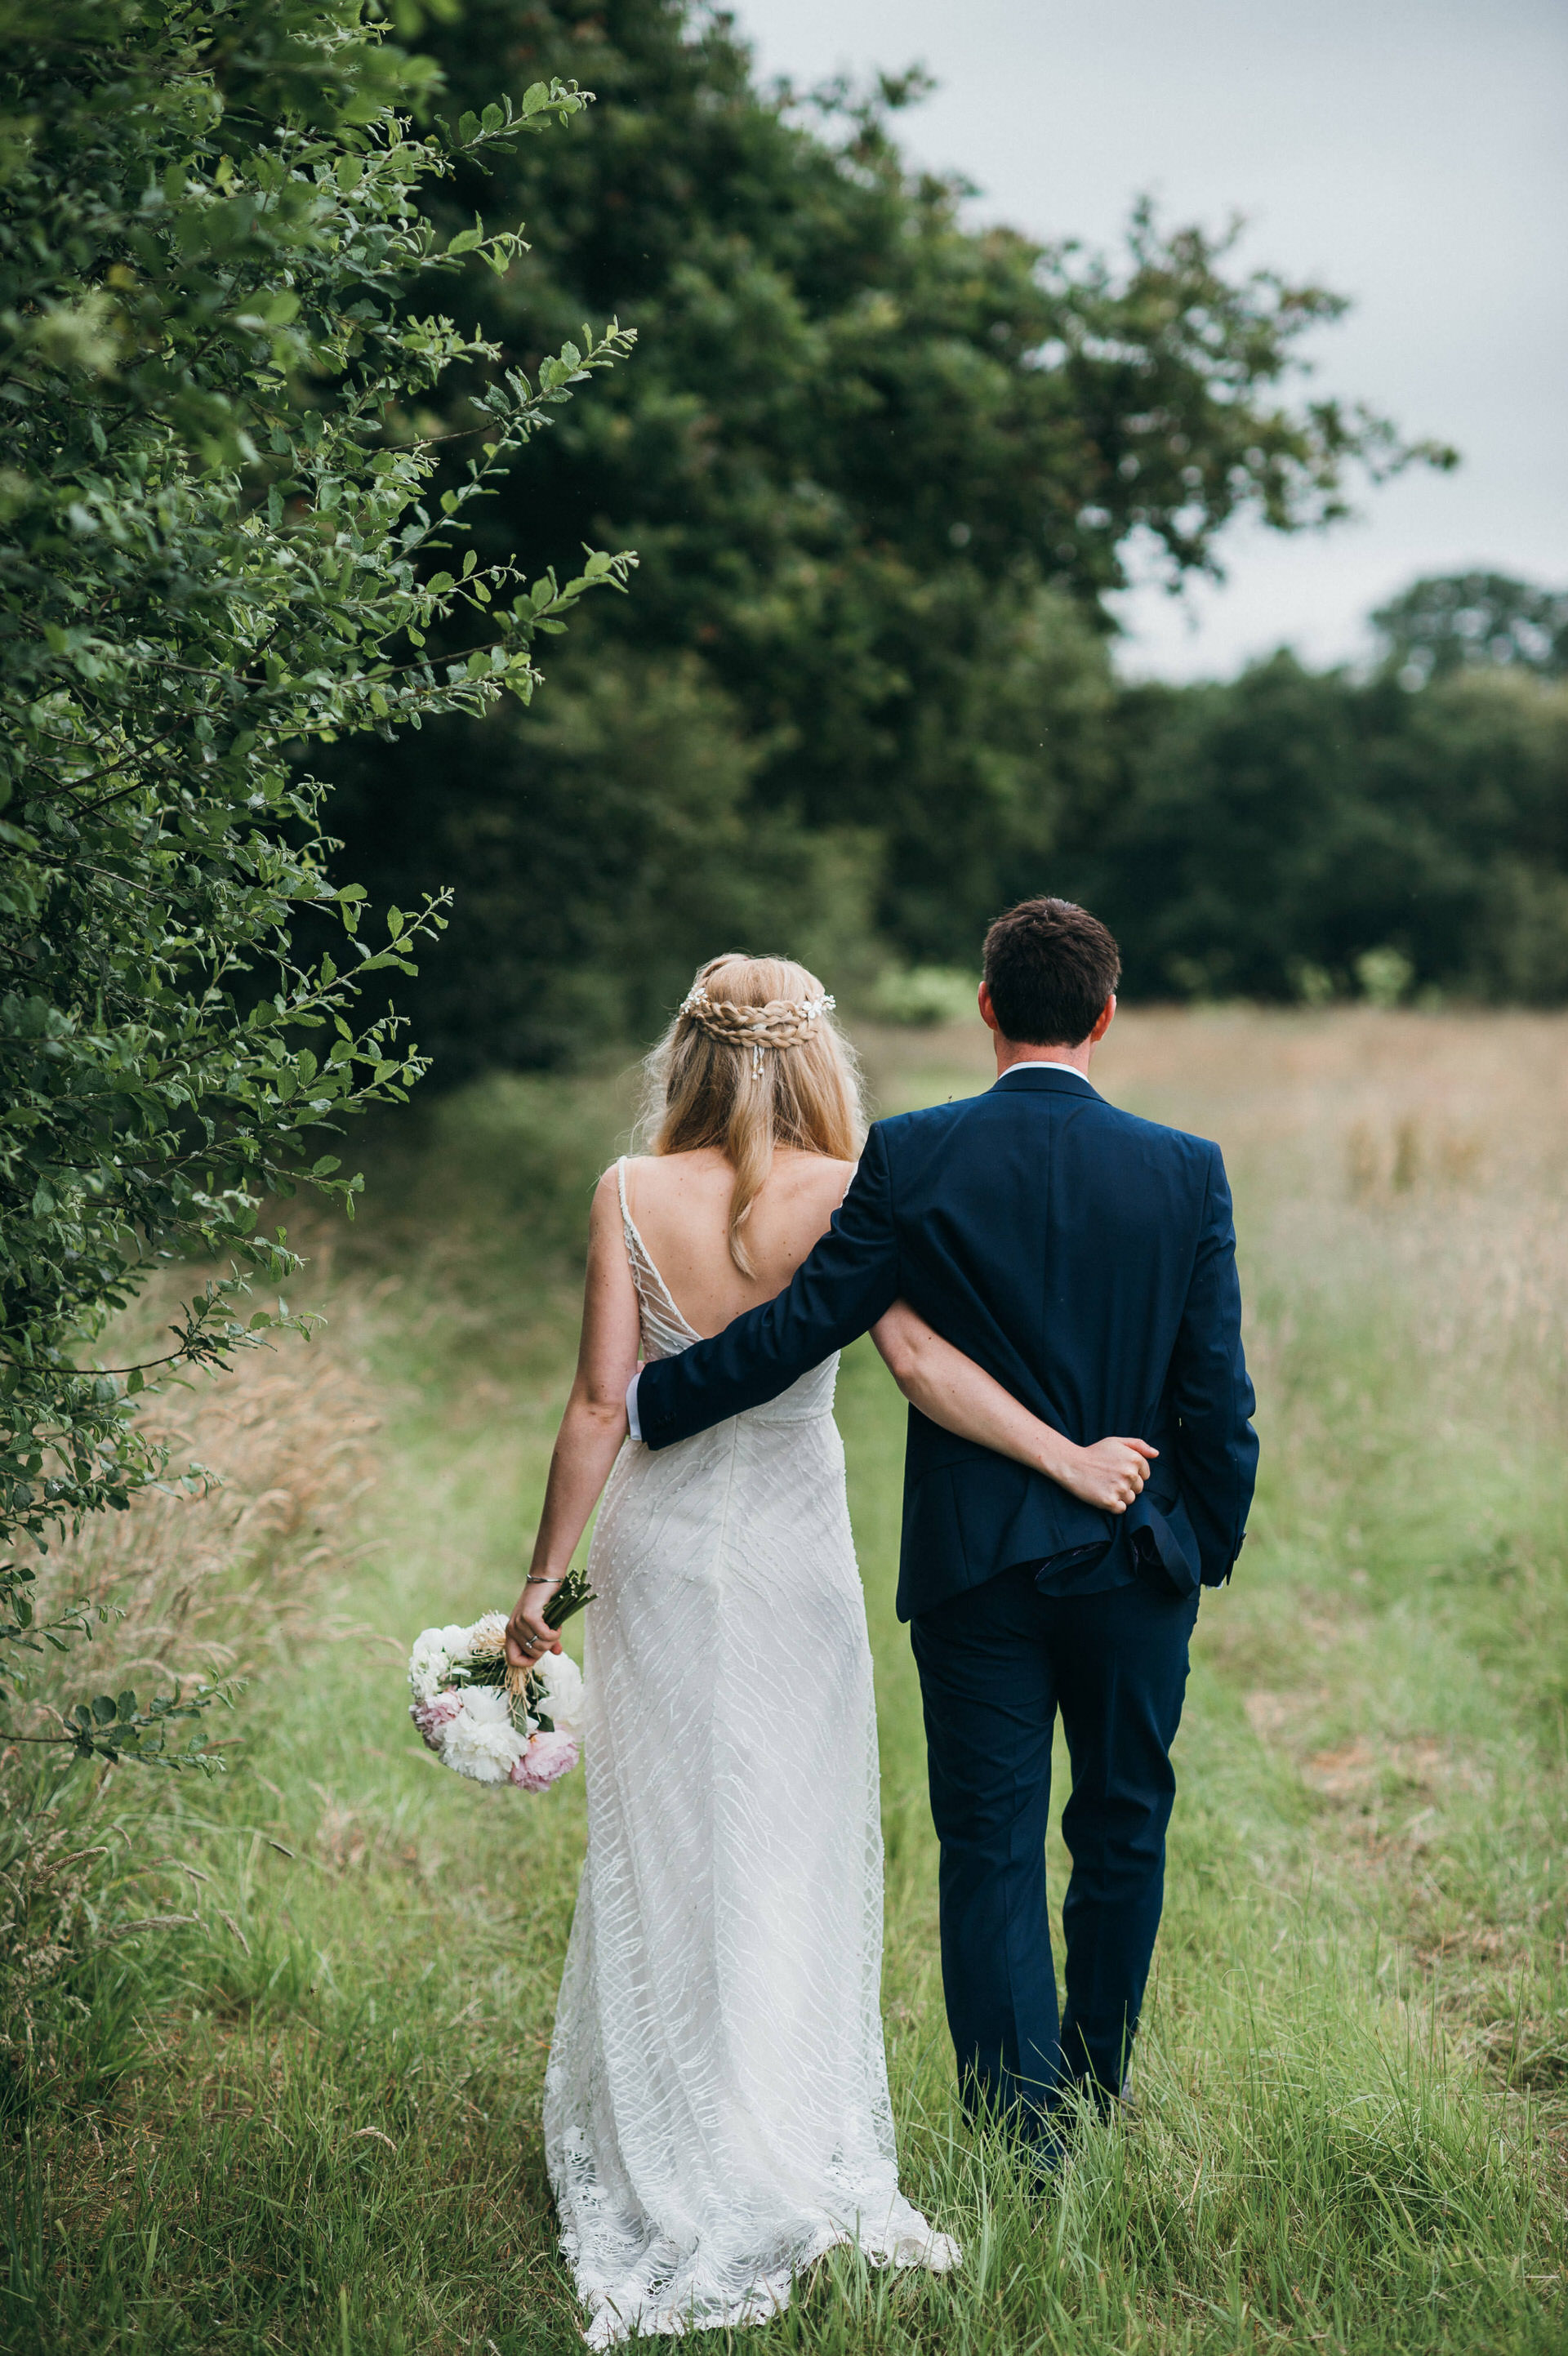 Bull Inn natural wedding photography